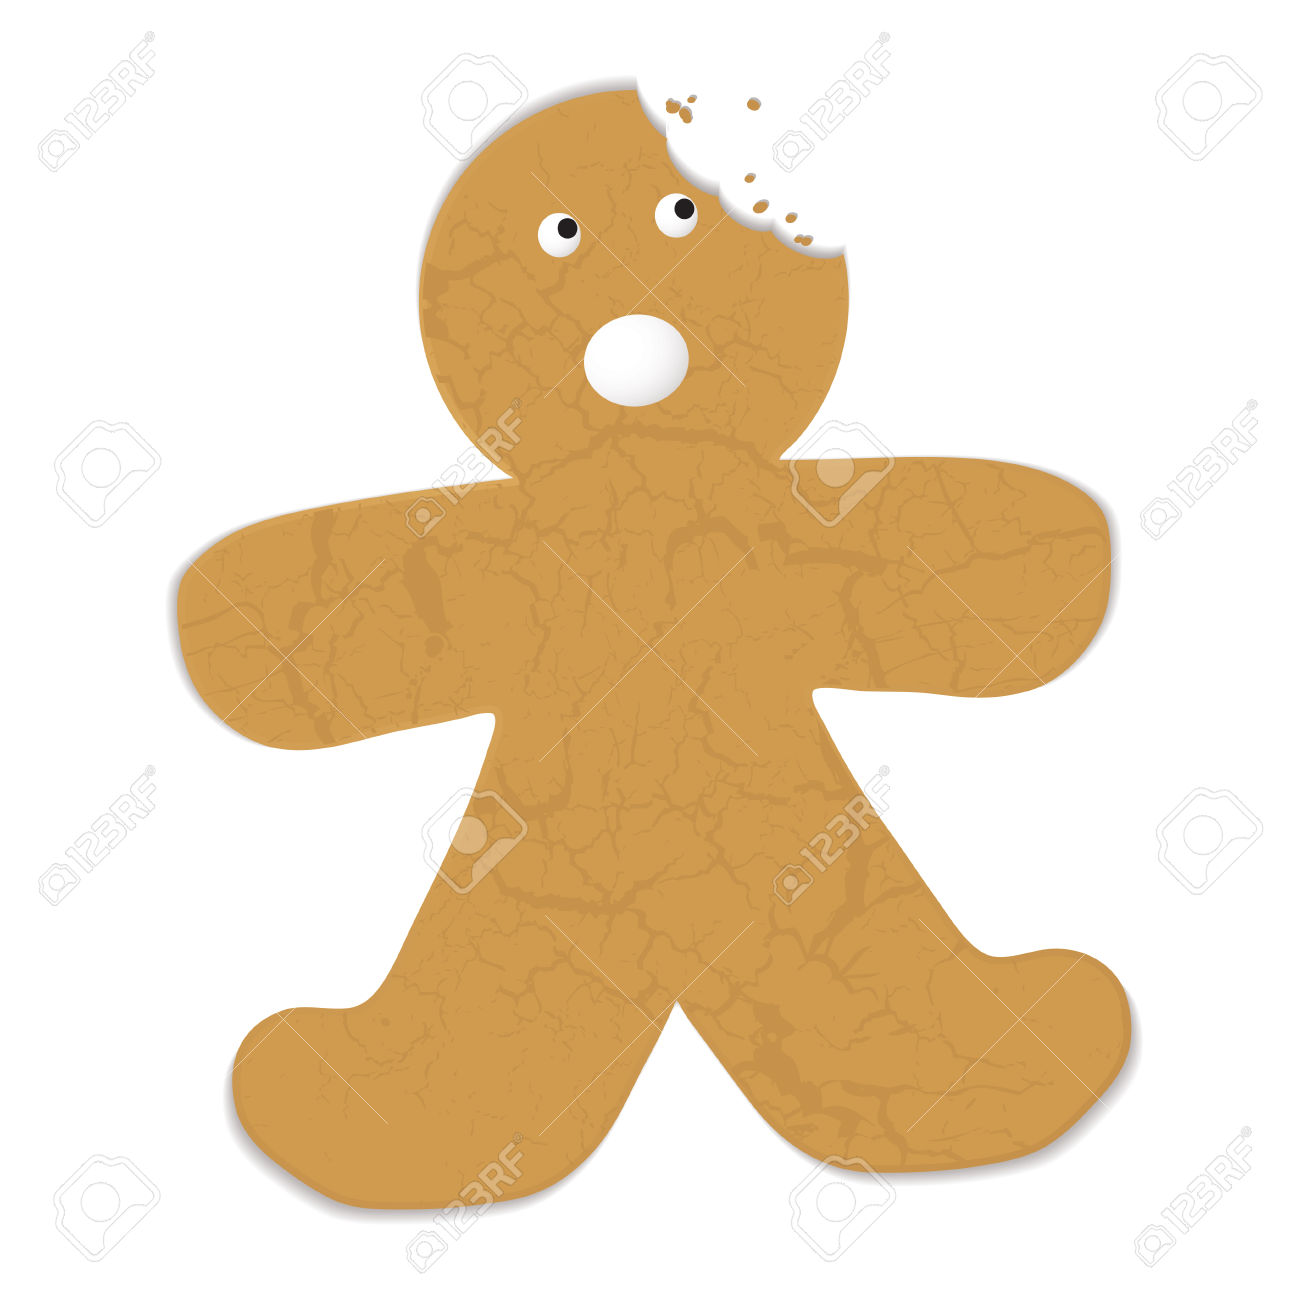 Gingerbread Man With A Bite Out Of His Head And Startled.